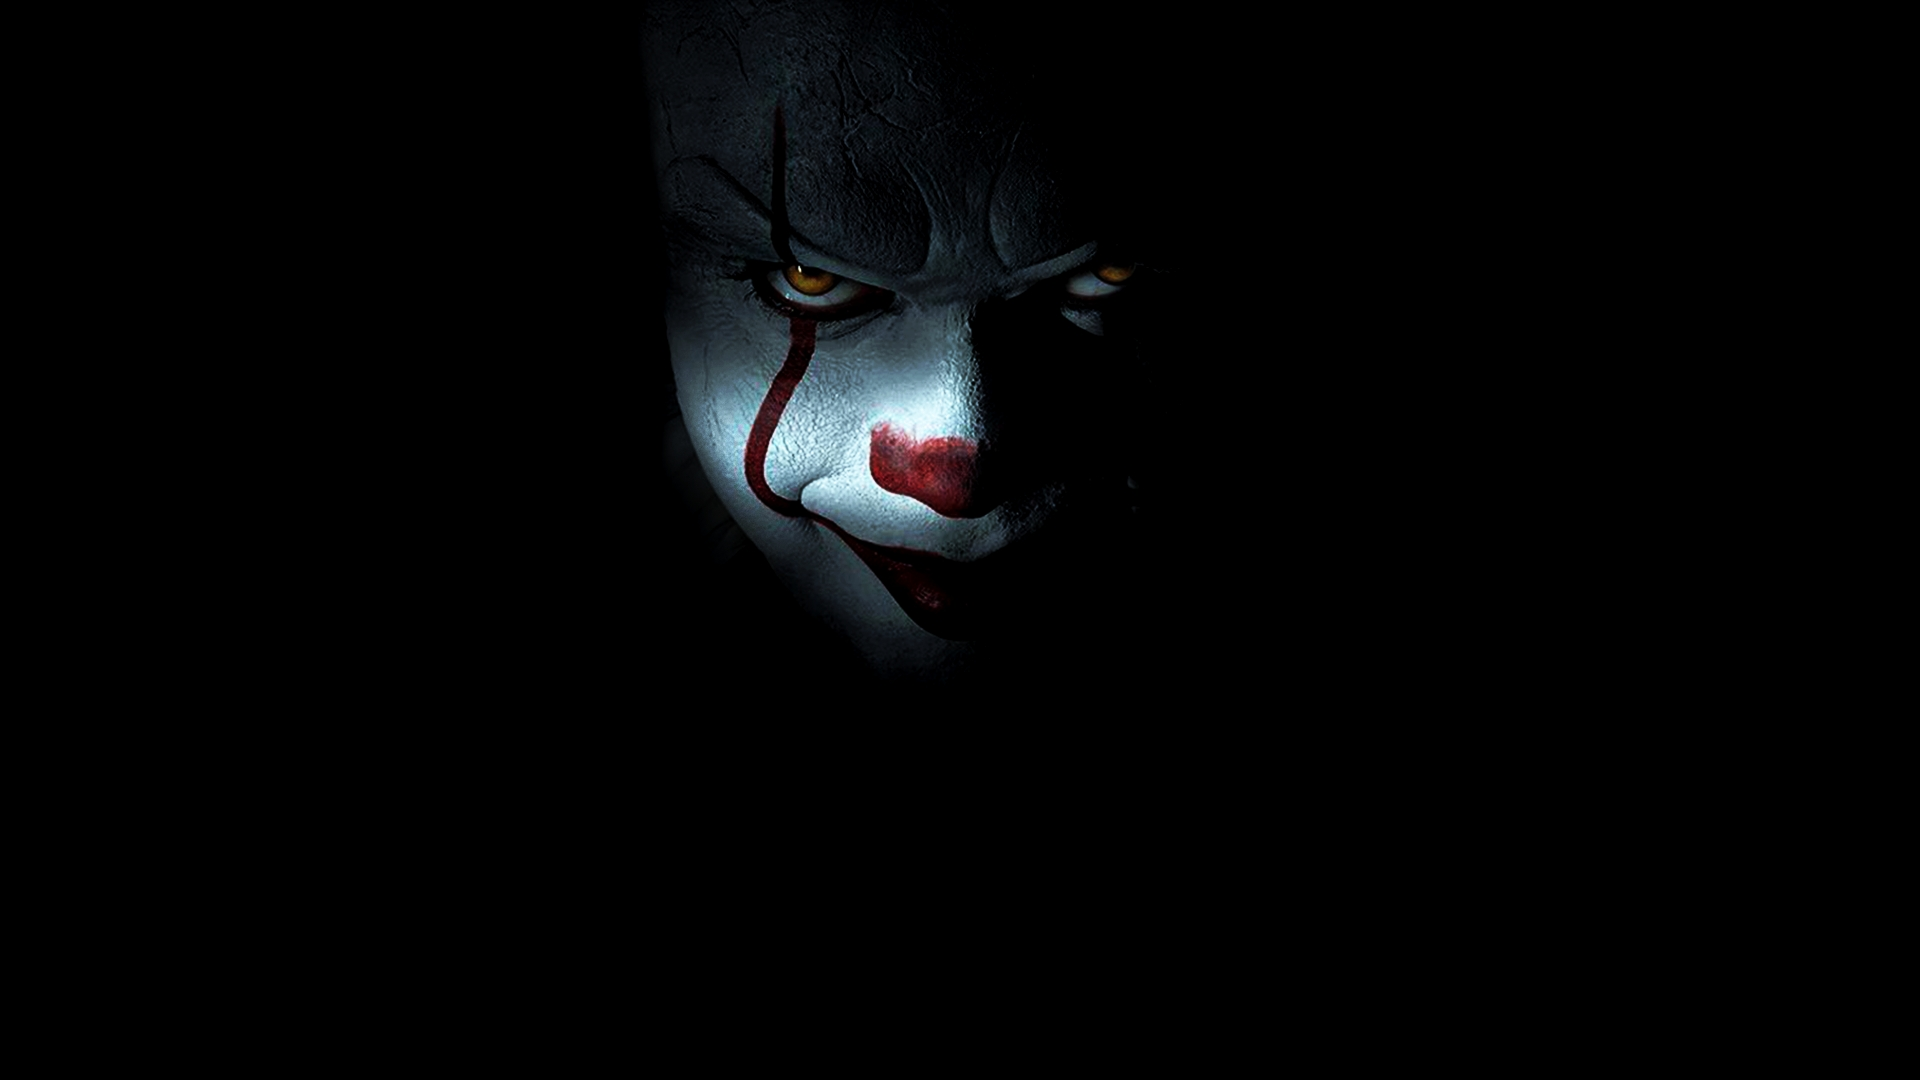 10 Best Pennywise The Clown Wallpaper FULL HD 1080p For PC Background